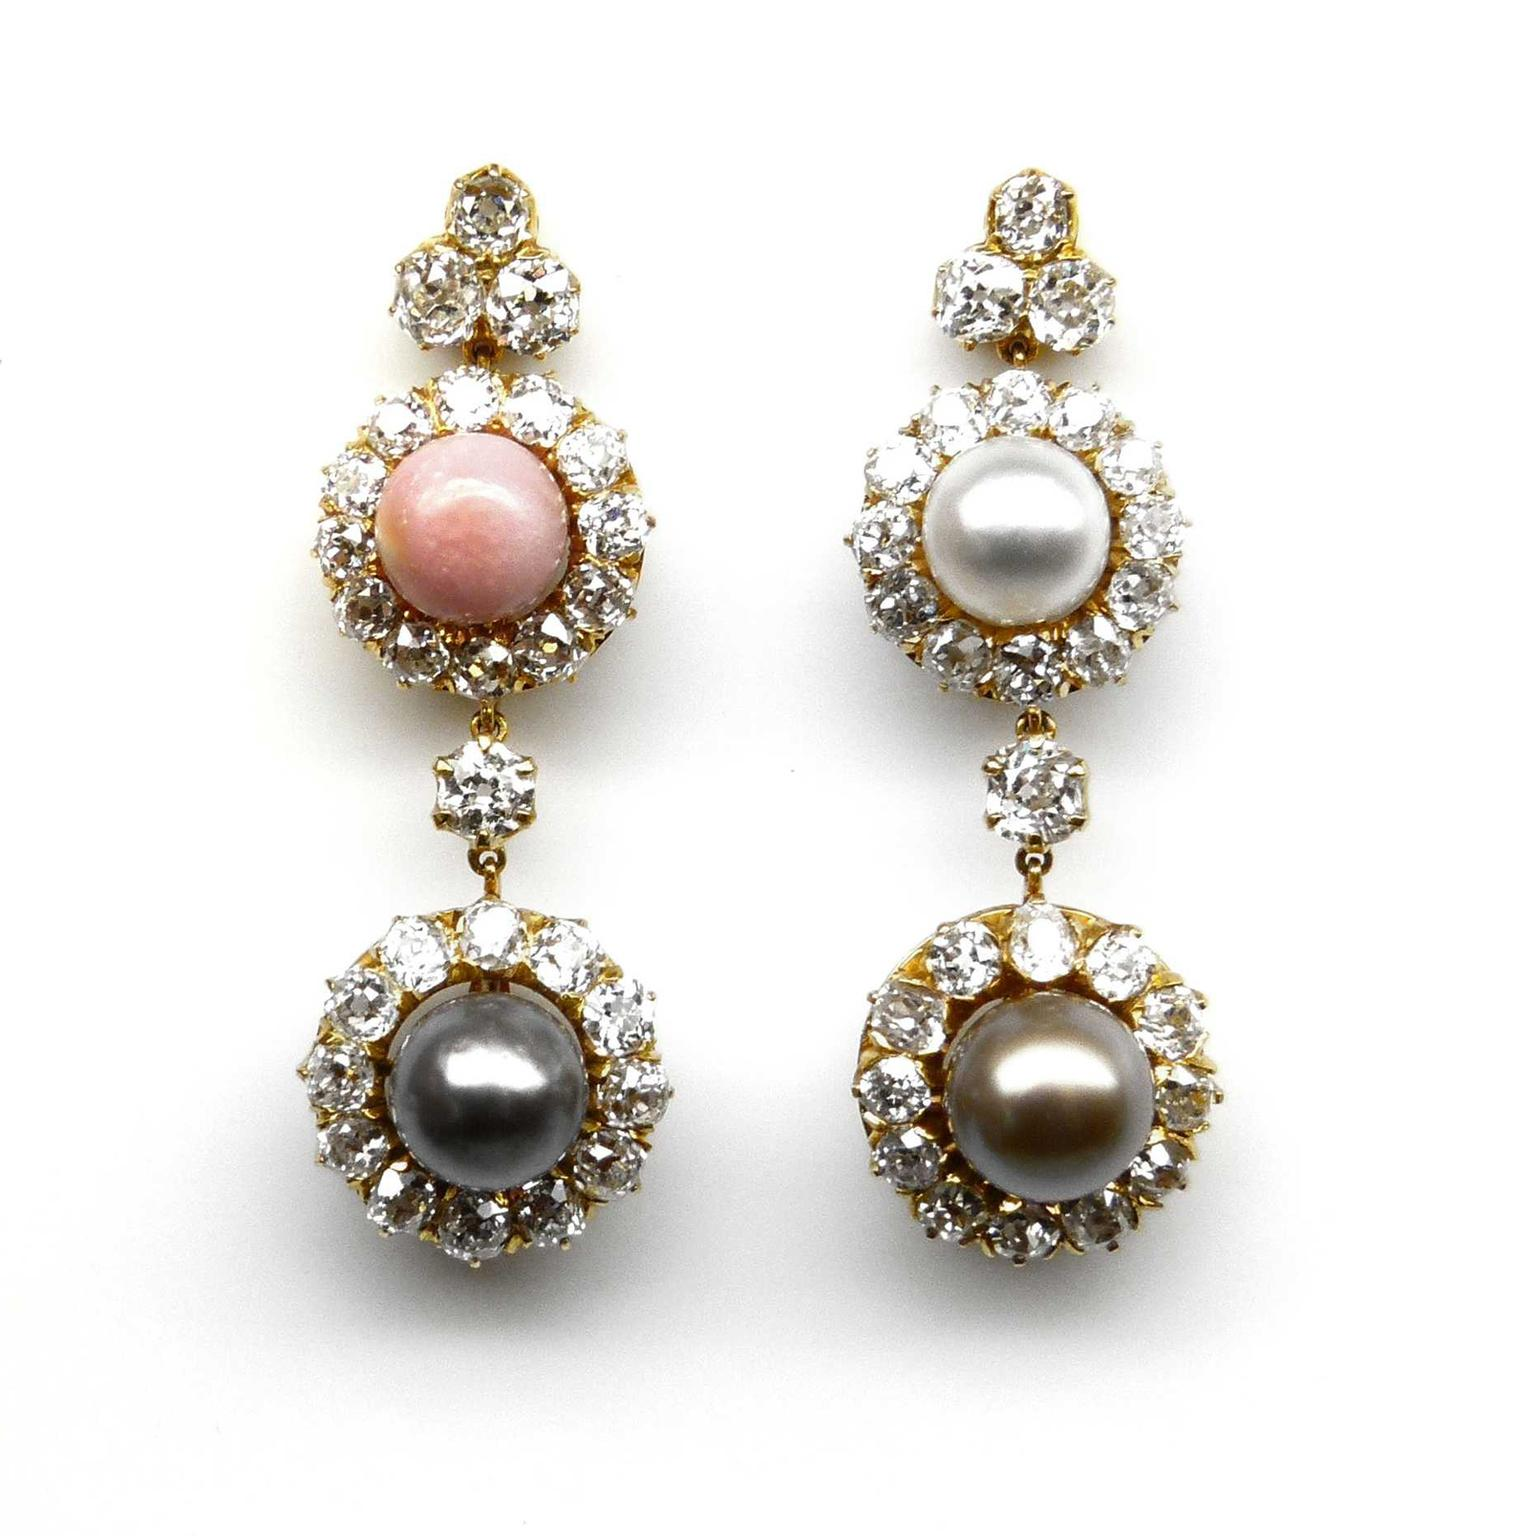 SJ Phillips pearl earrings